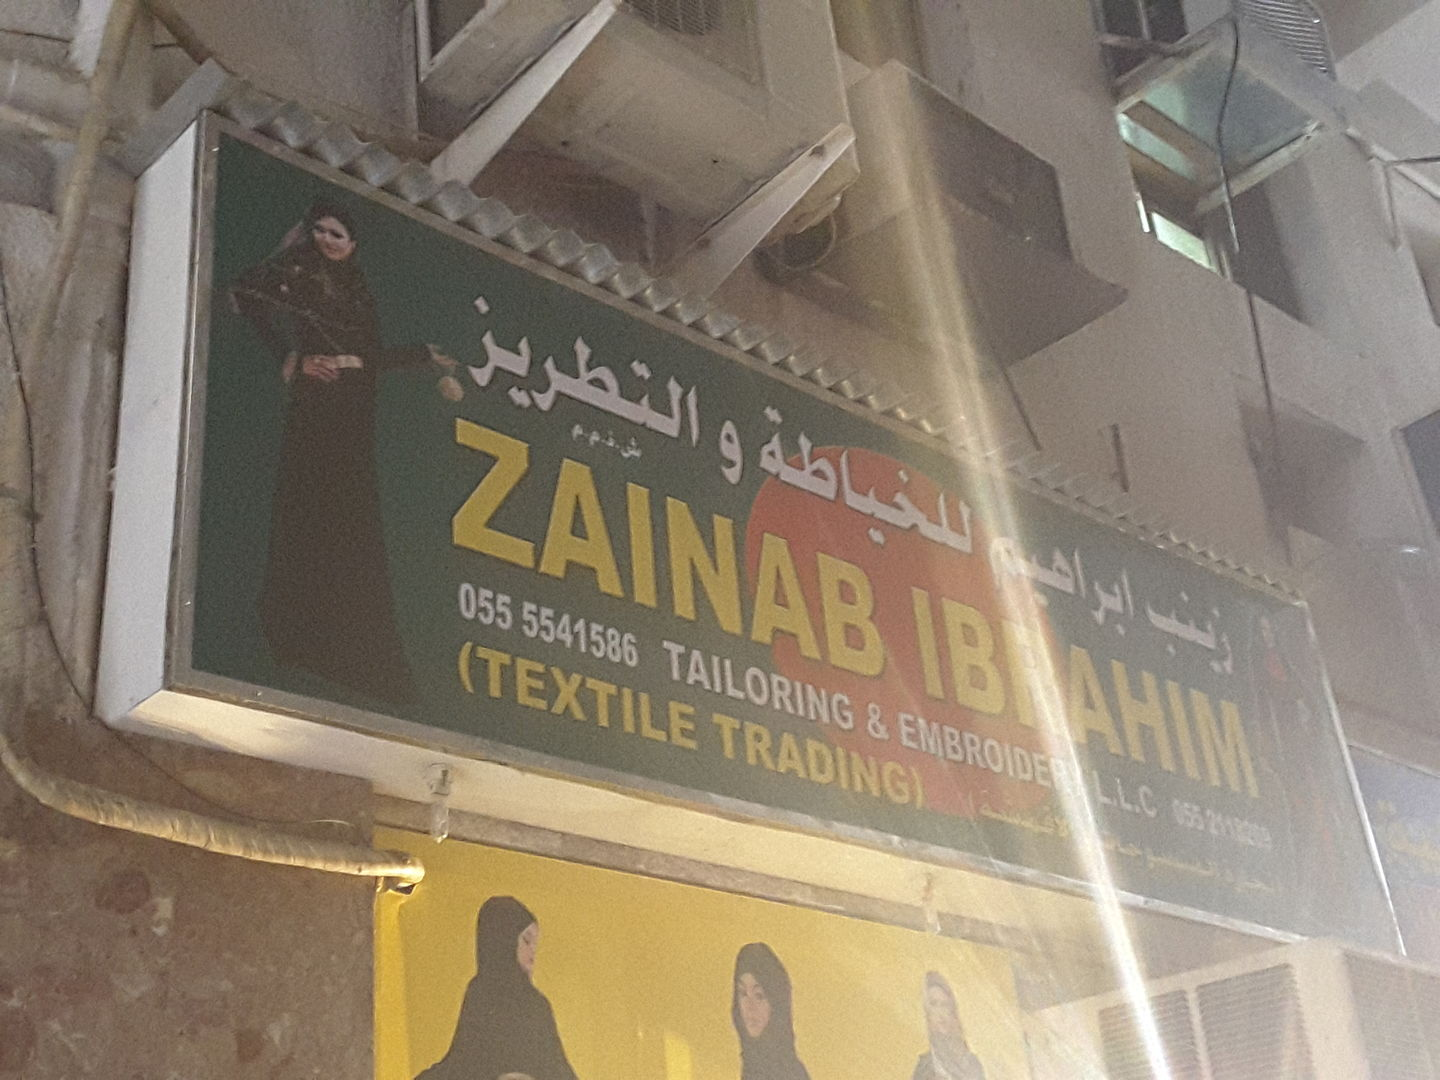 HiDubai-business-zainab-ibrahim-tailoring-and-embroidery-b2b-services-distributors-wholesalers-ayal-nasir-dubai-2